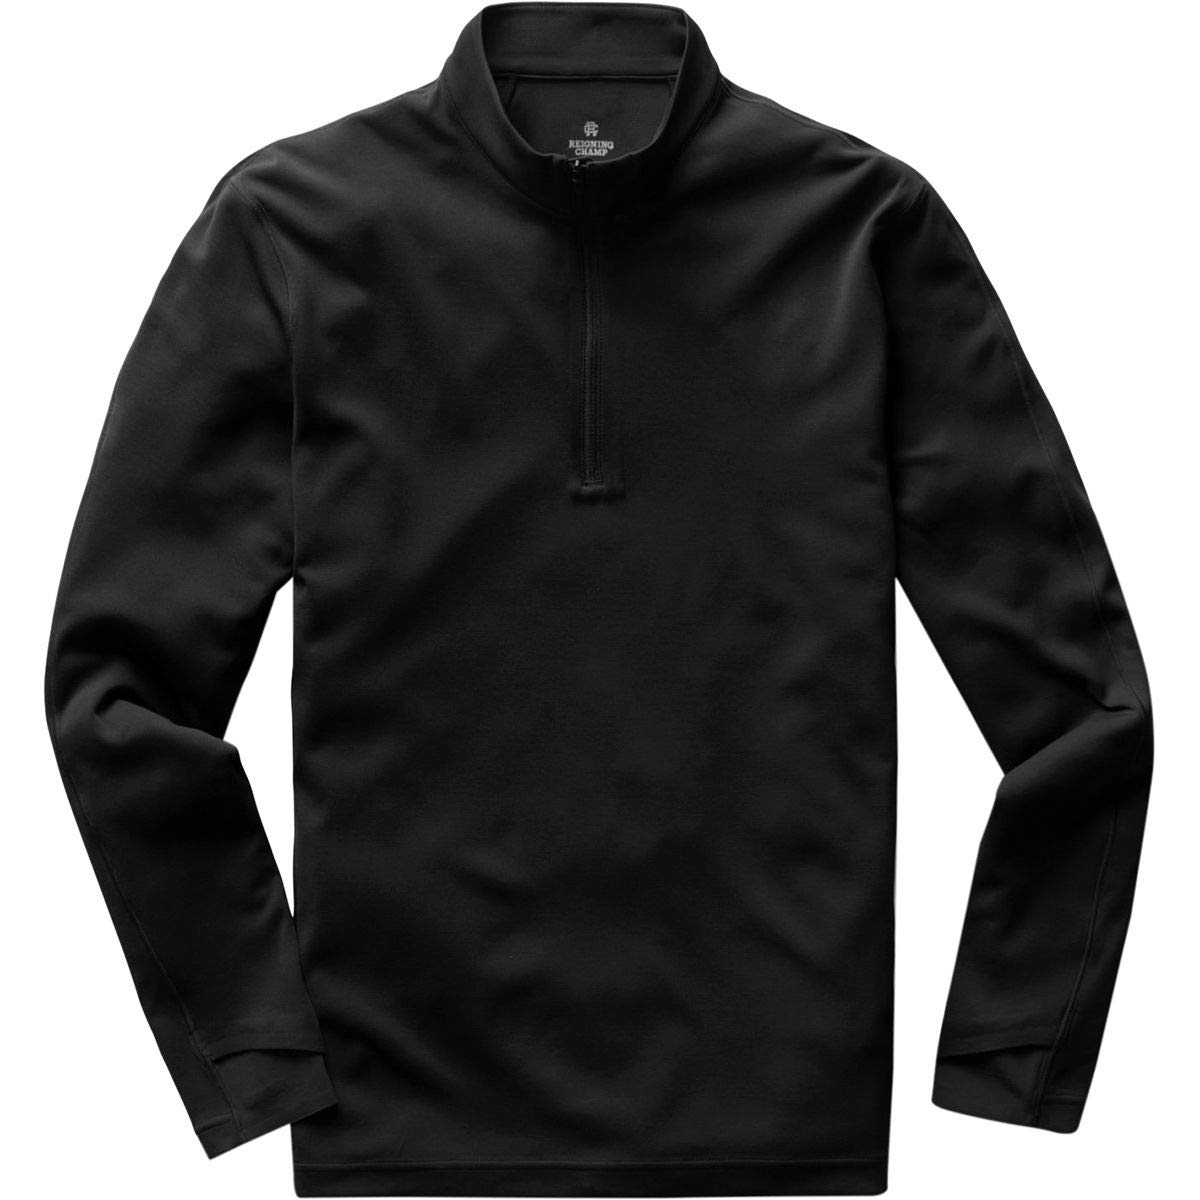 Reigning Champ Men's Trail Power Dry Shirt, Black, Large